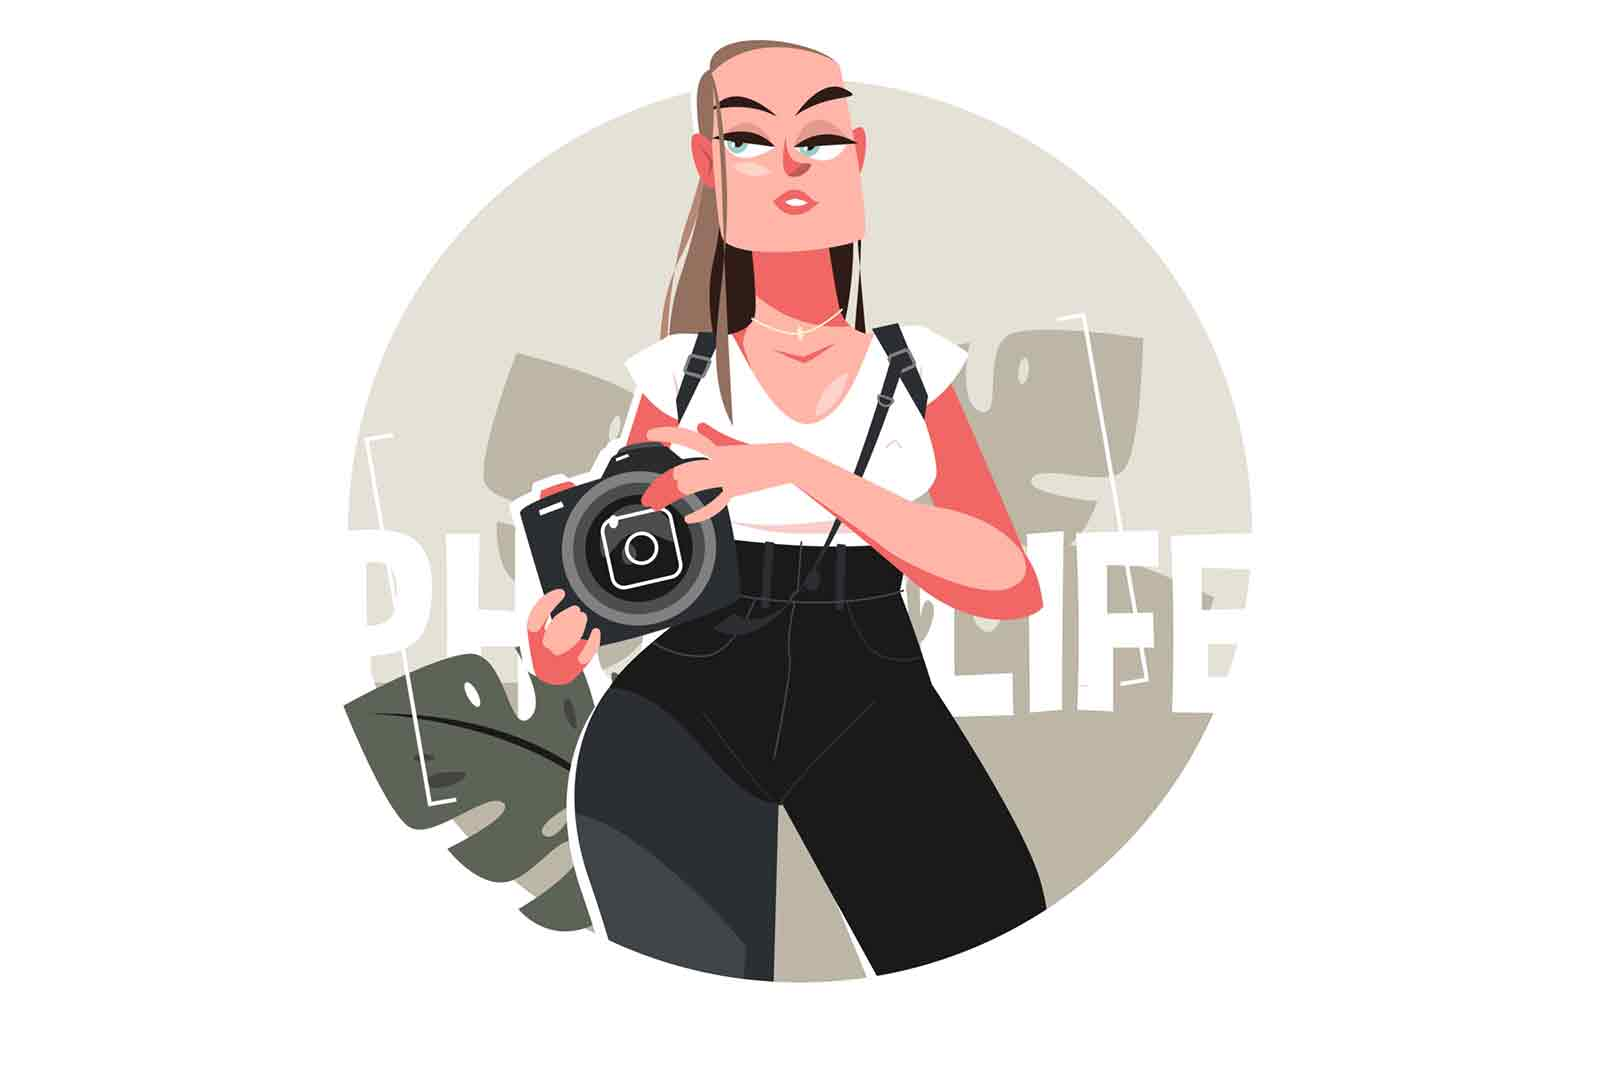 Girl luxury professional photographer vector illustration. Stylish and attractive woman with camera flat style. Modern and creative occupation concept. Isolated on white background